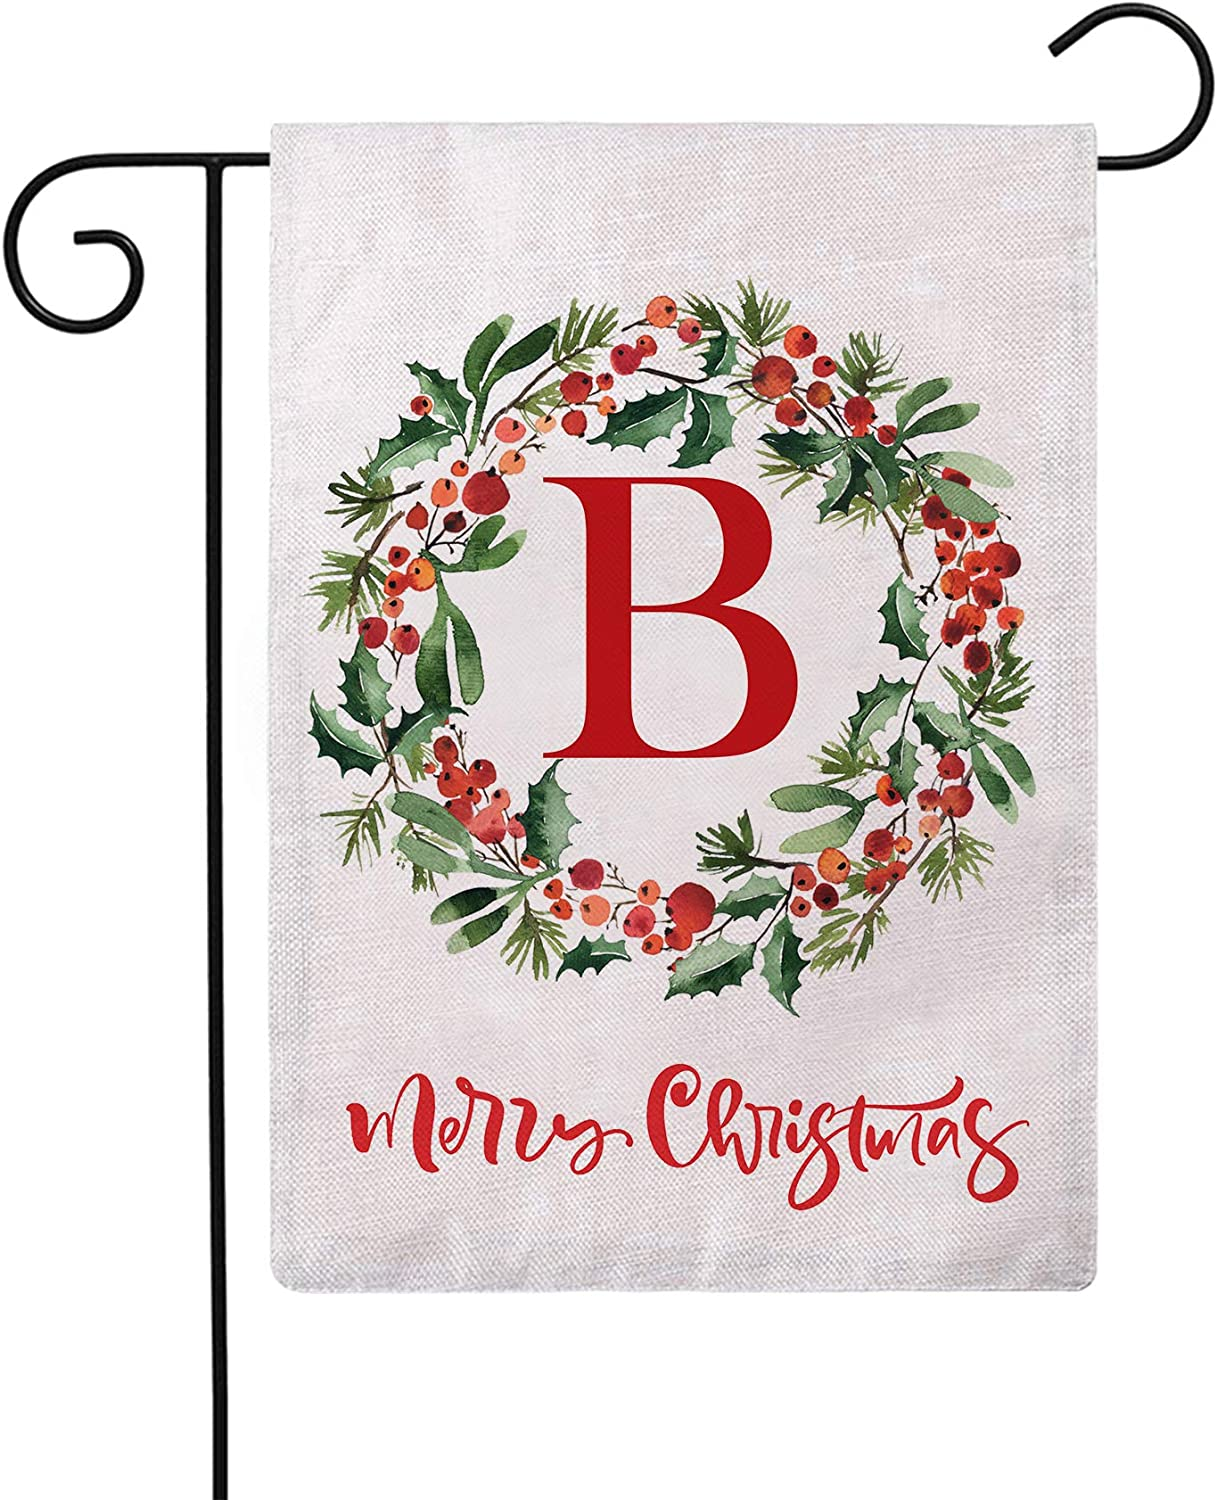 ULOVE LOVE YOURSELF Merry Christmas Wreath Decorative Garden Flags with Monogram Letter B Double Sided Winter Holiday Outdoor Garden Flags 12.5×18 Inch for House Garden Yard Patio Decor (B)